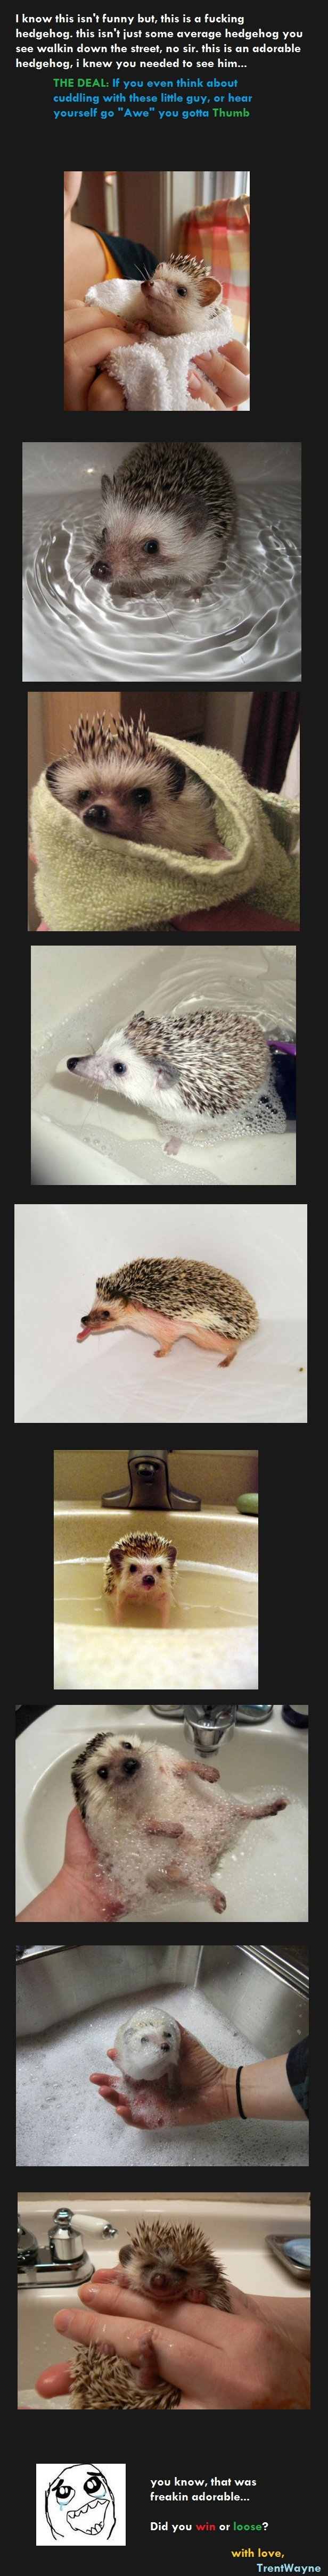 The Deal: Cute Hedgehog. thank you, i take no credit for this! spare a thumb, or read the description..oh wait already did 1 why not the other.. Lose not loose